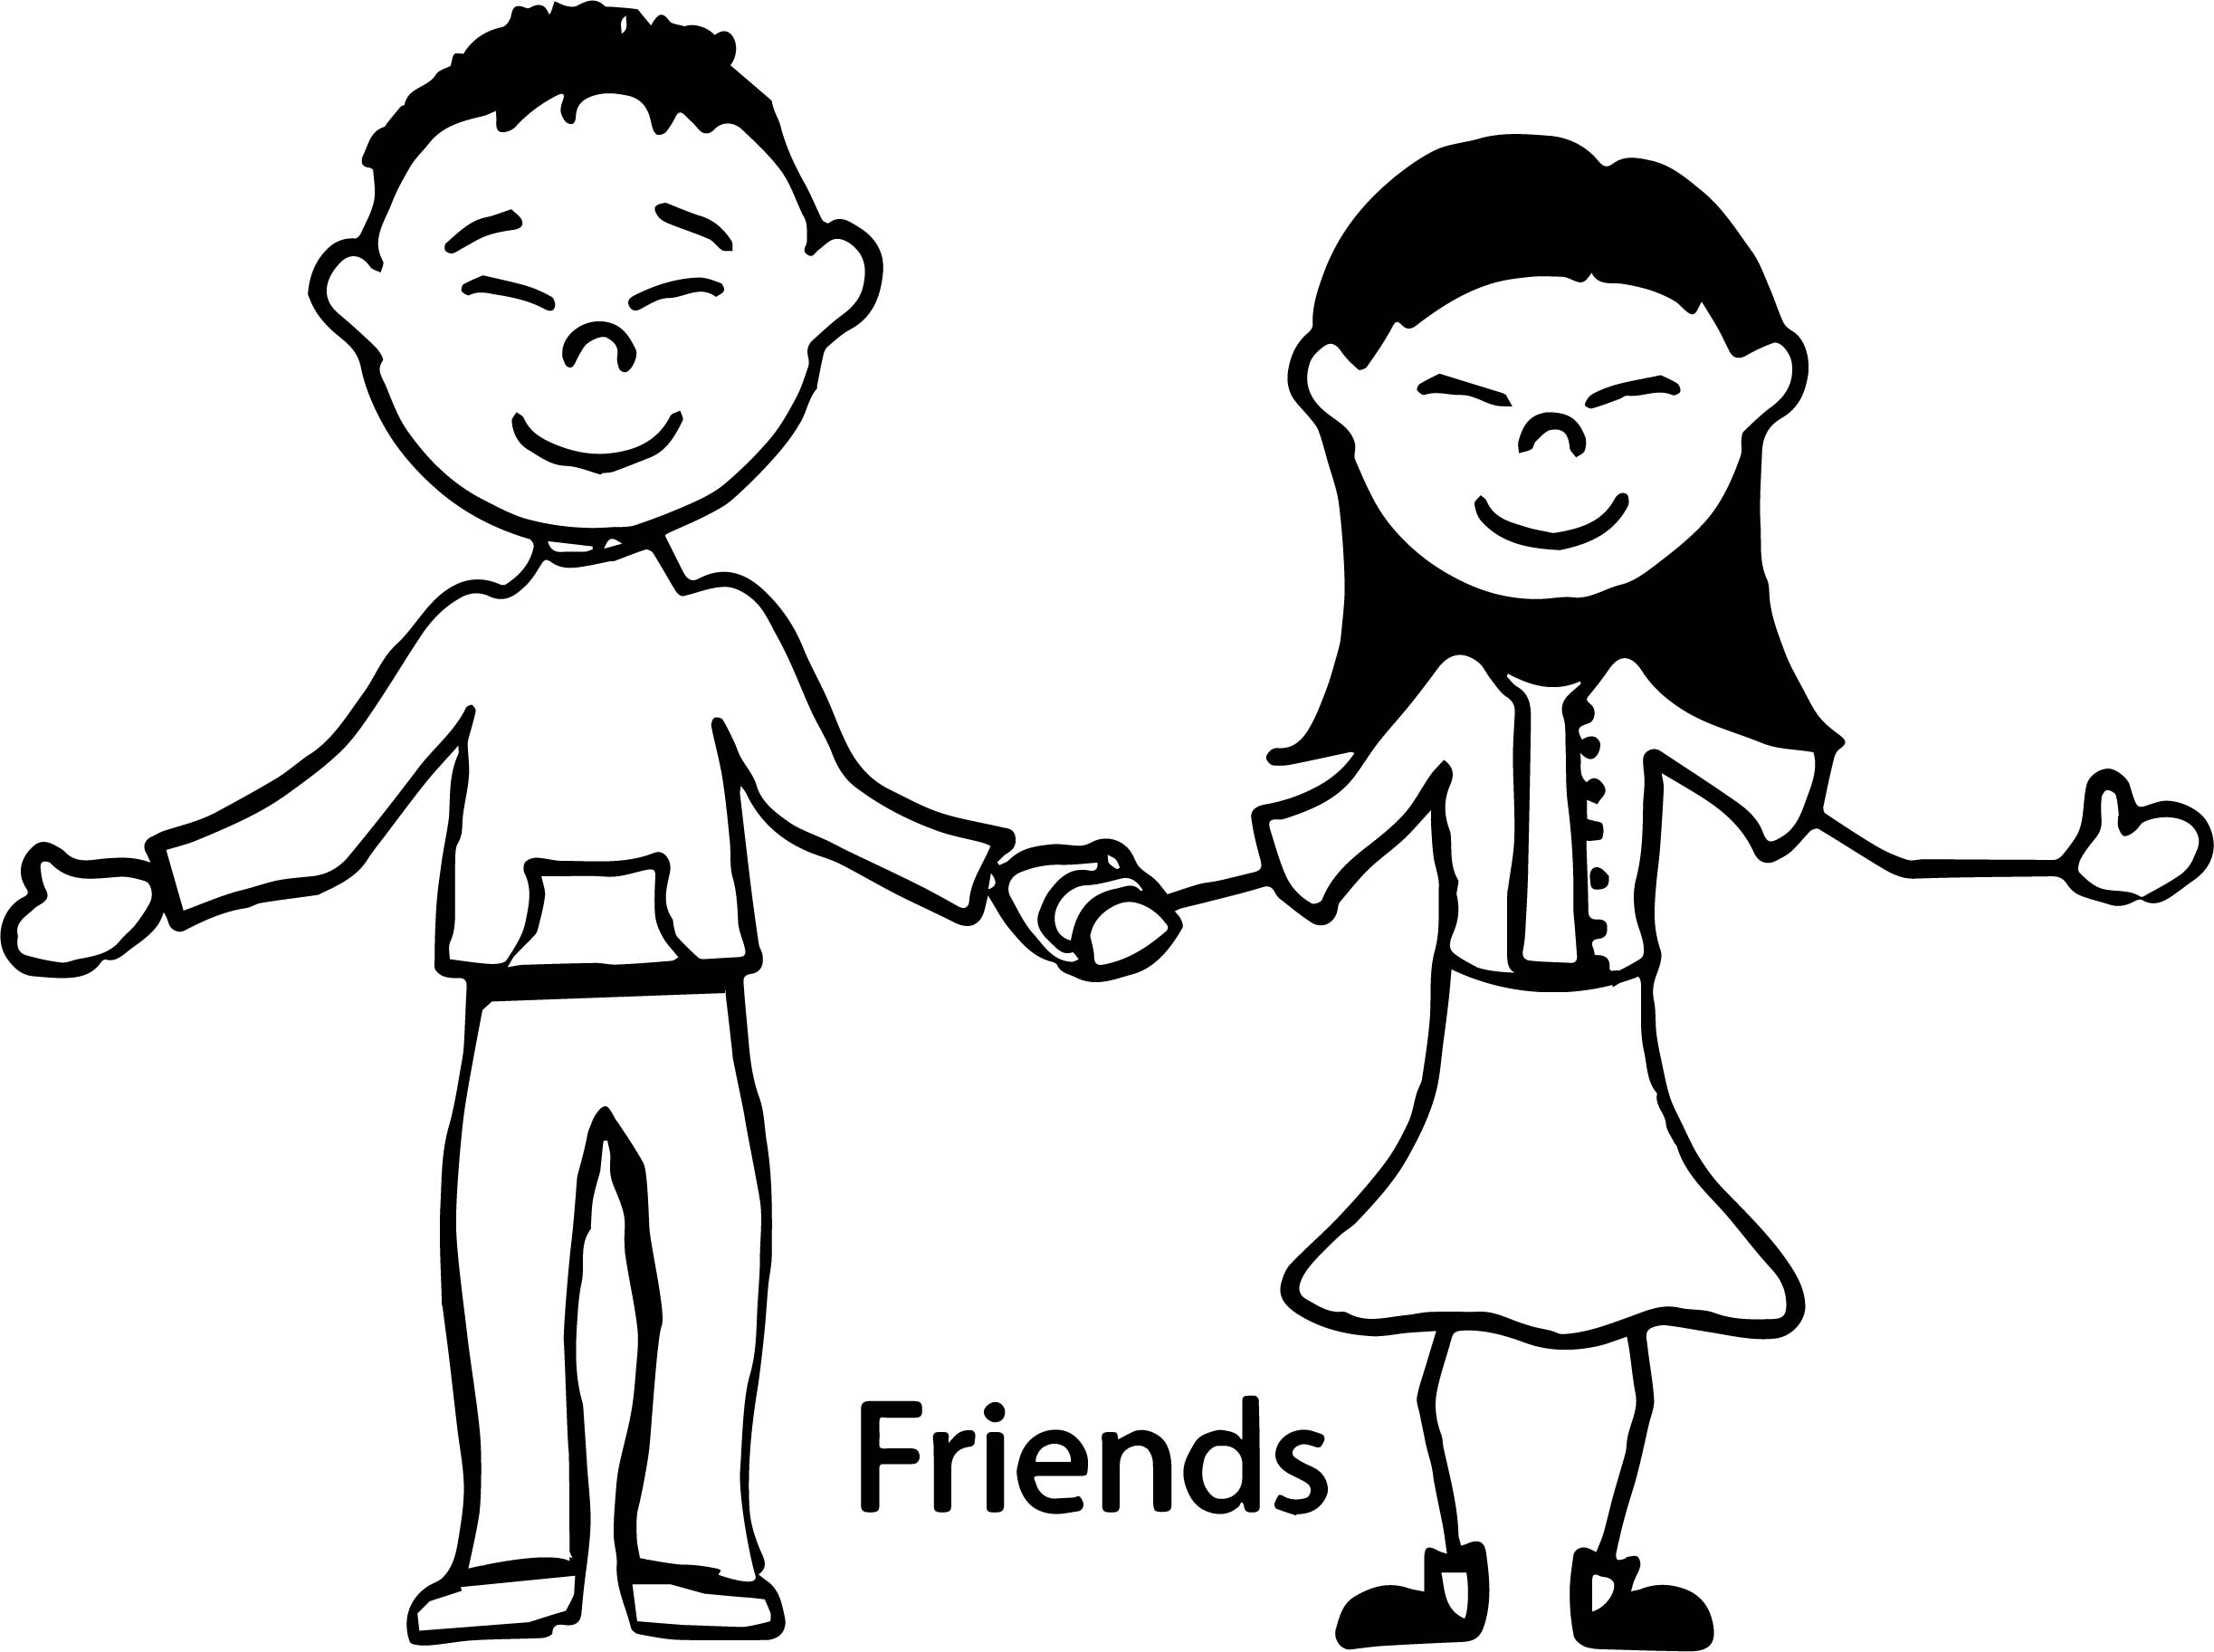 friendship children coloring page wecoloringpage